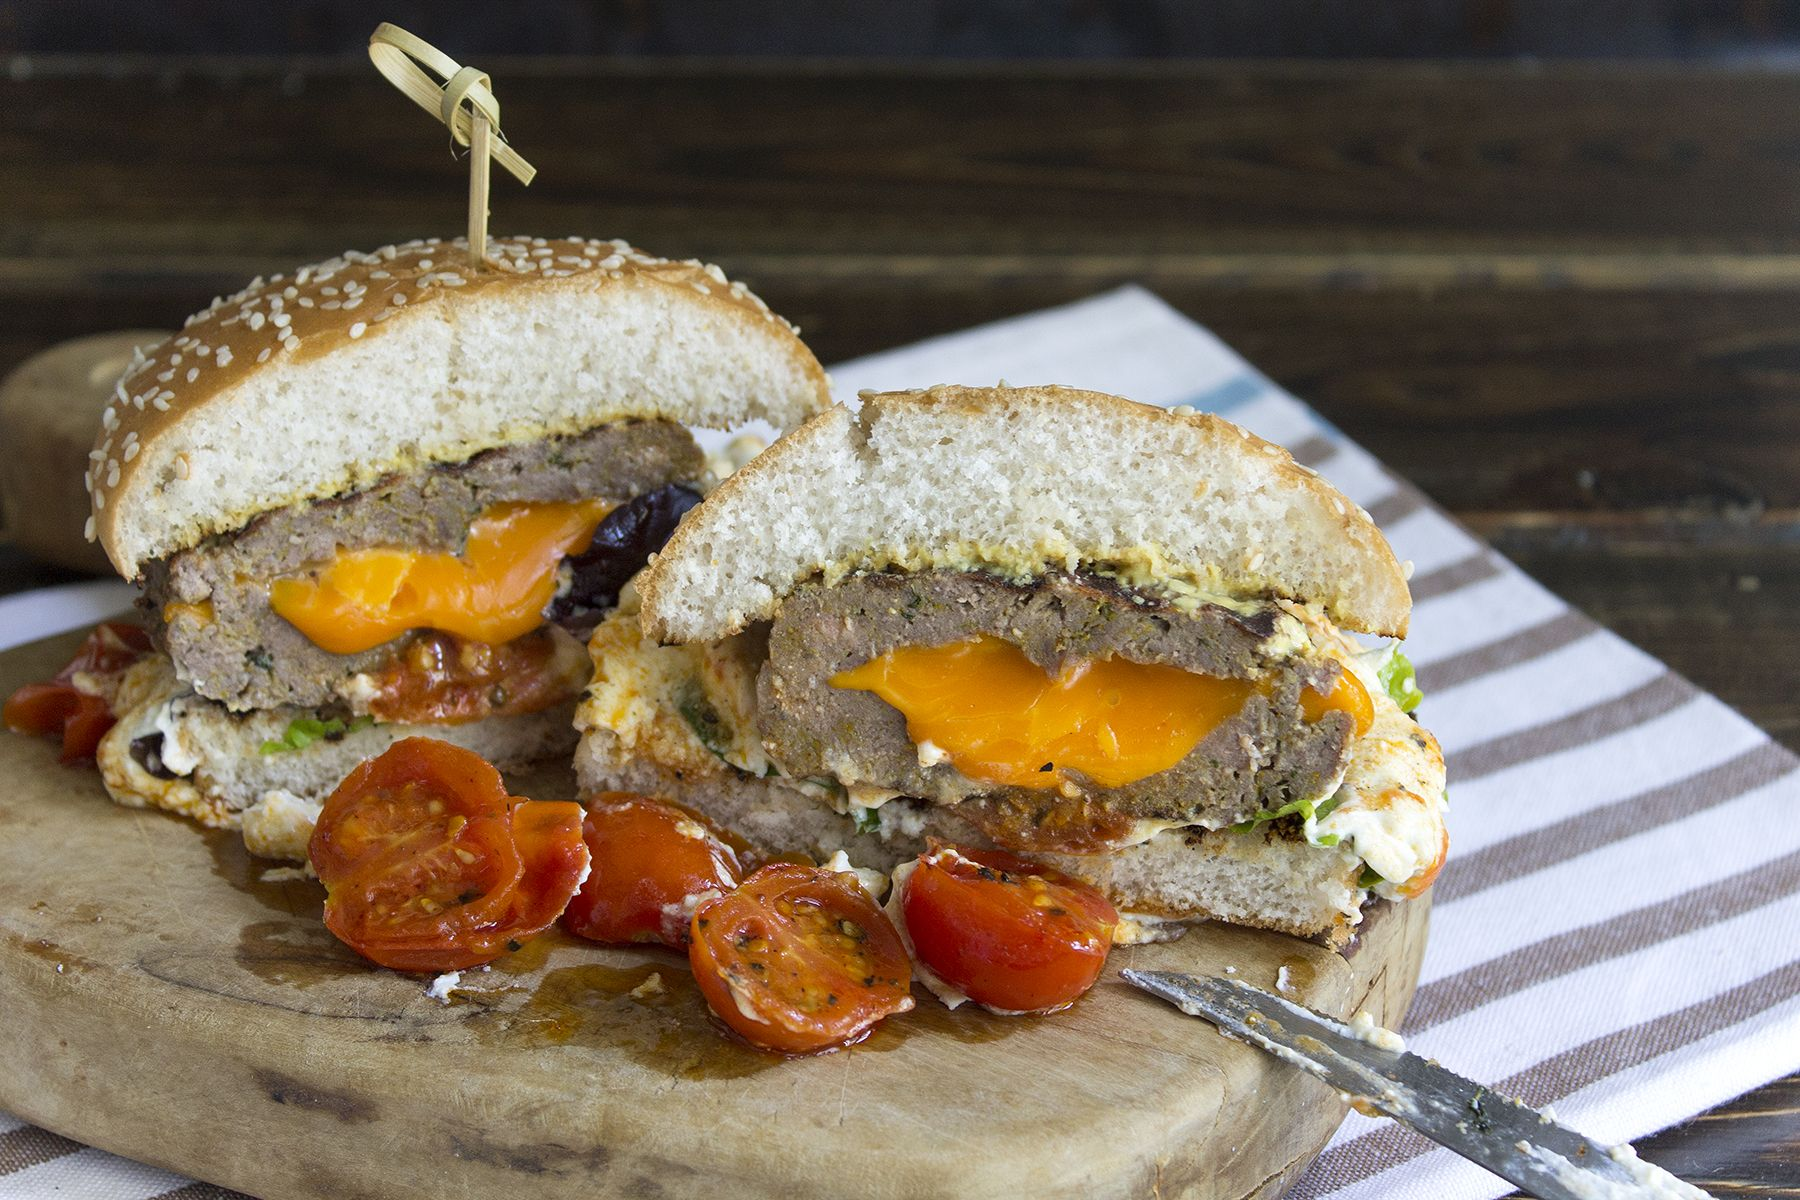 juicy-lucy-hamburger-ricetta-contemporaneo-food